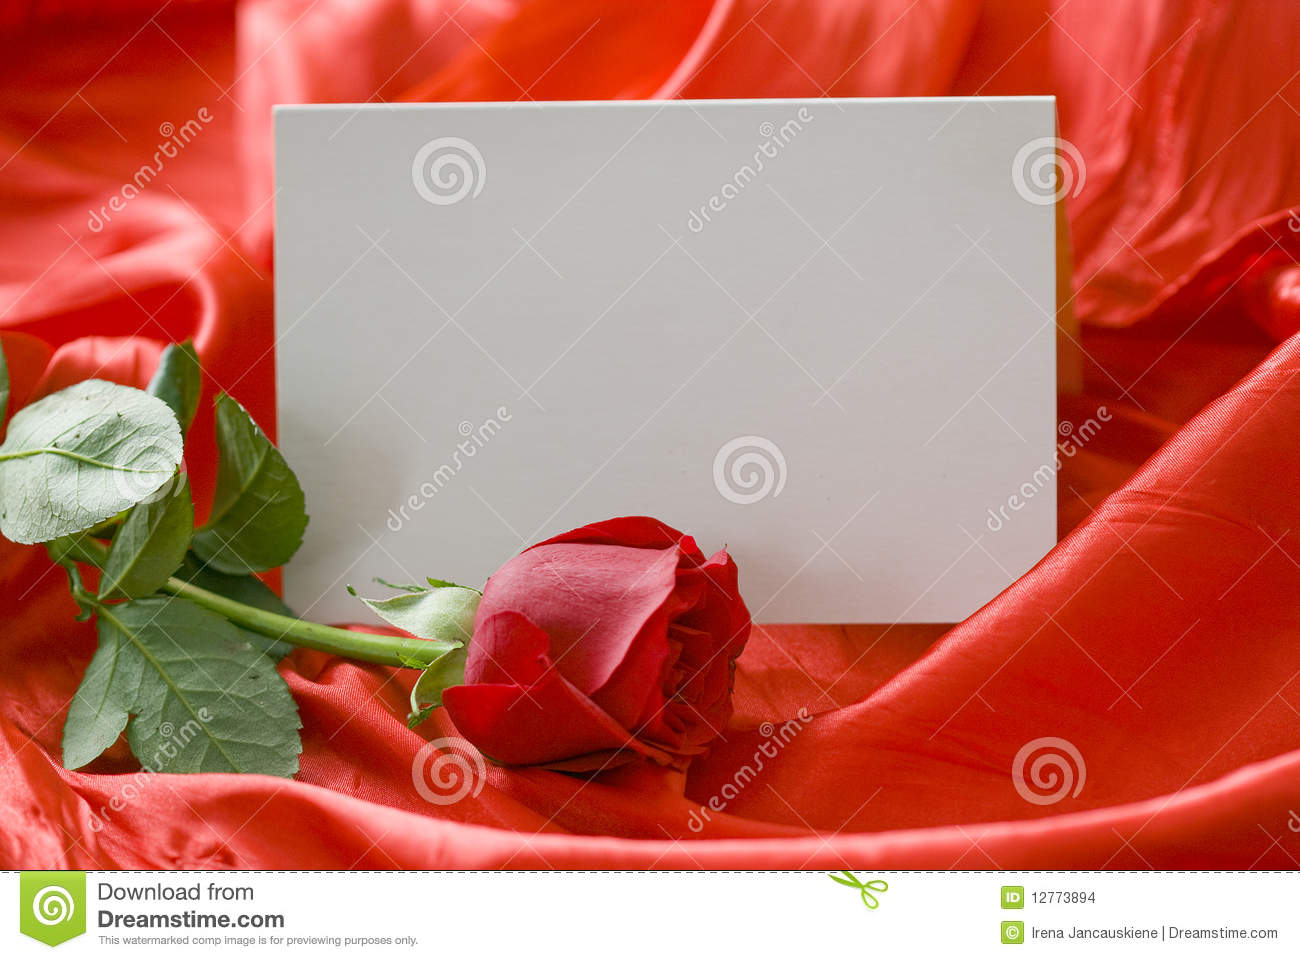 Red Rose And Invitation Card Stock Photo Image Of Color